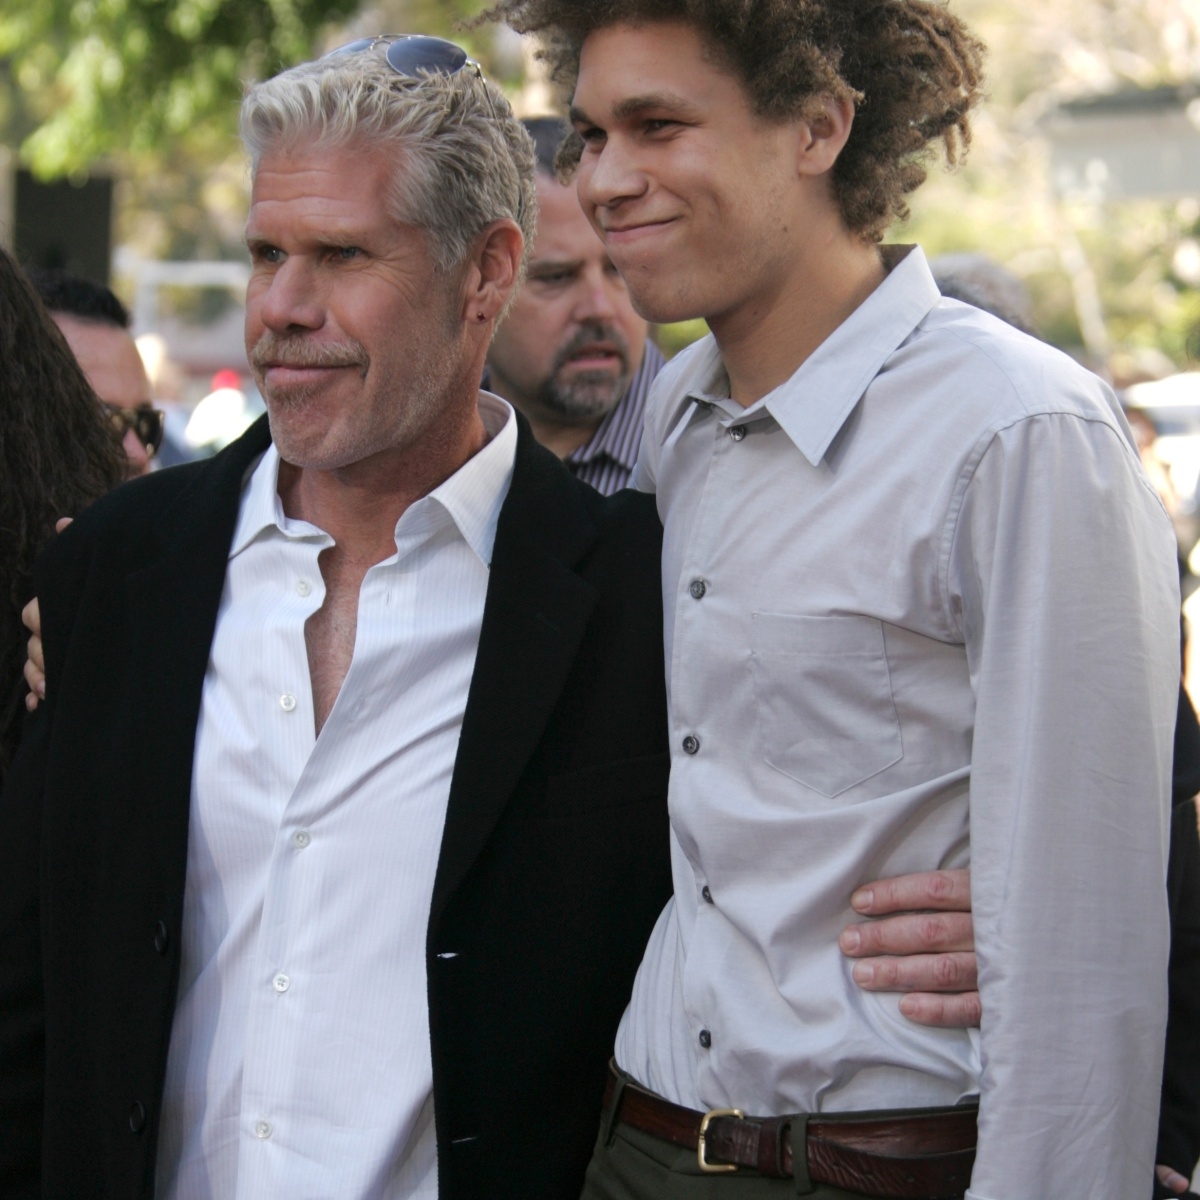 Ron Perlman Is the Proud Dad of 2 Kids! Get to Know Daughter Blake and Son Brandon